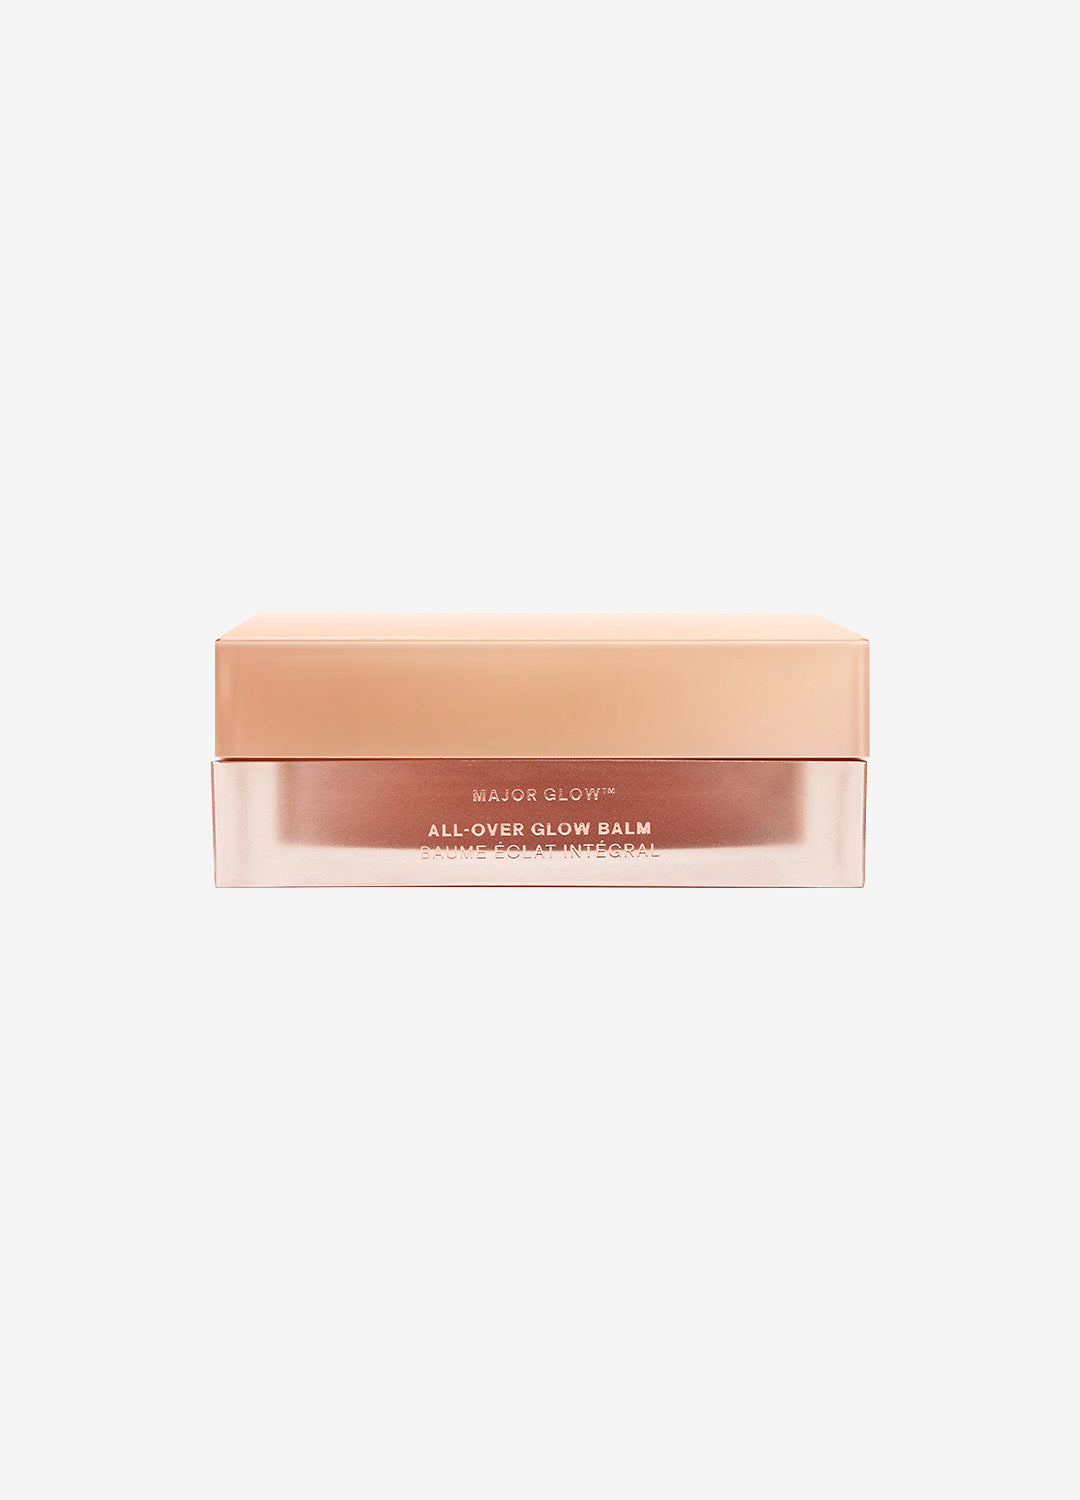 Major Glow All-Over Glow Balm